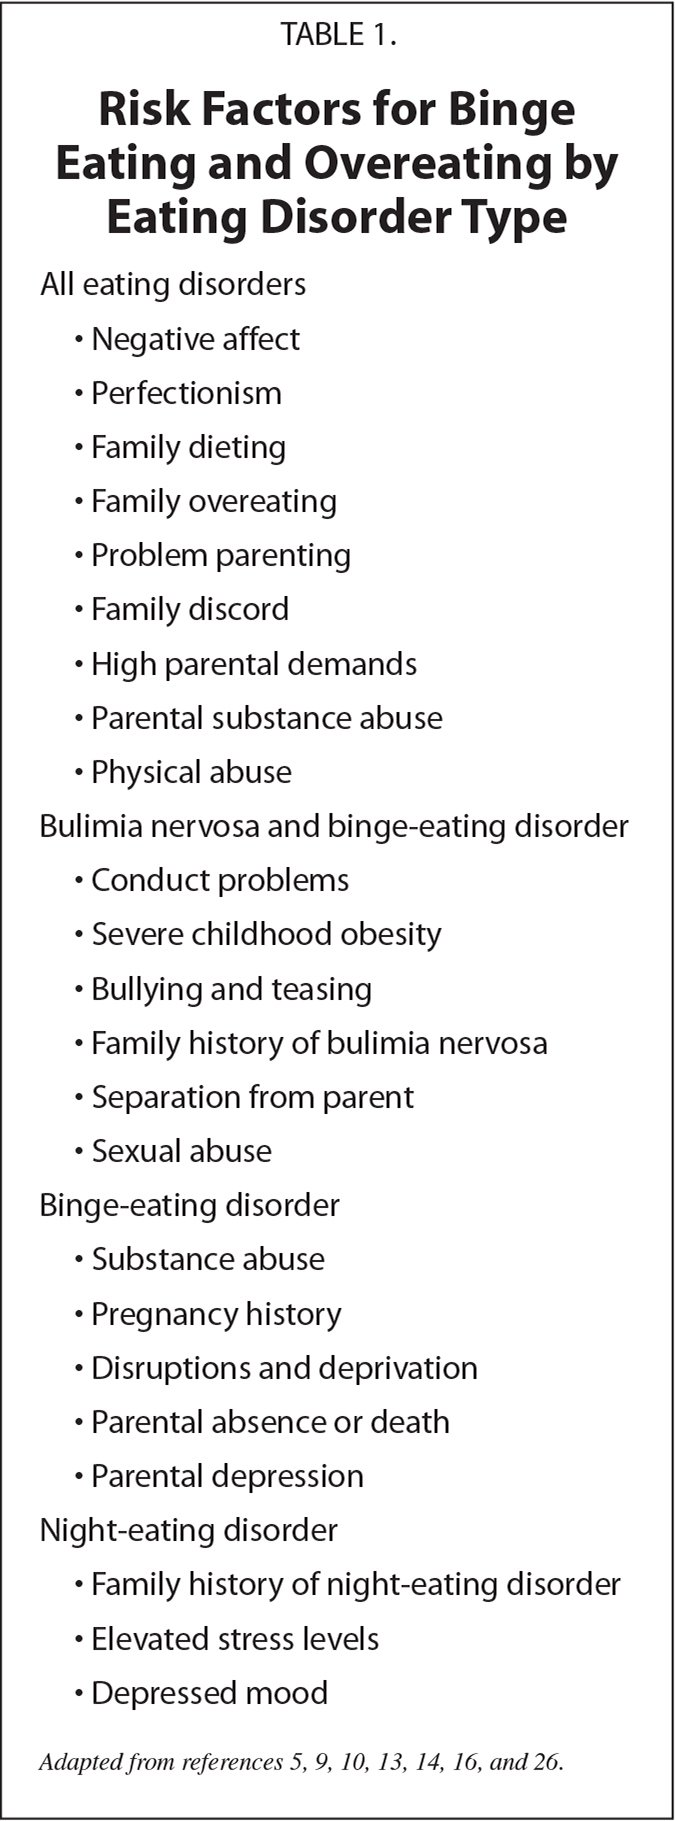 Risk Factors for Binge Eating and Overeating by Eating Disorder Type